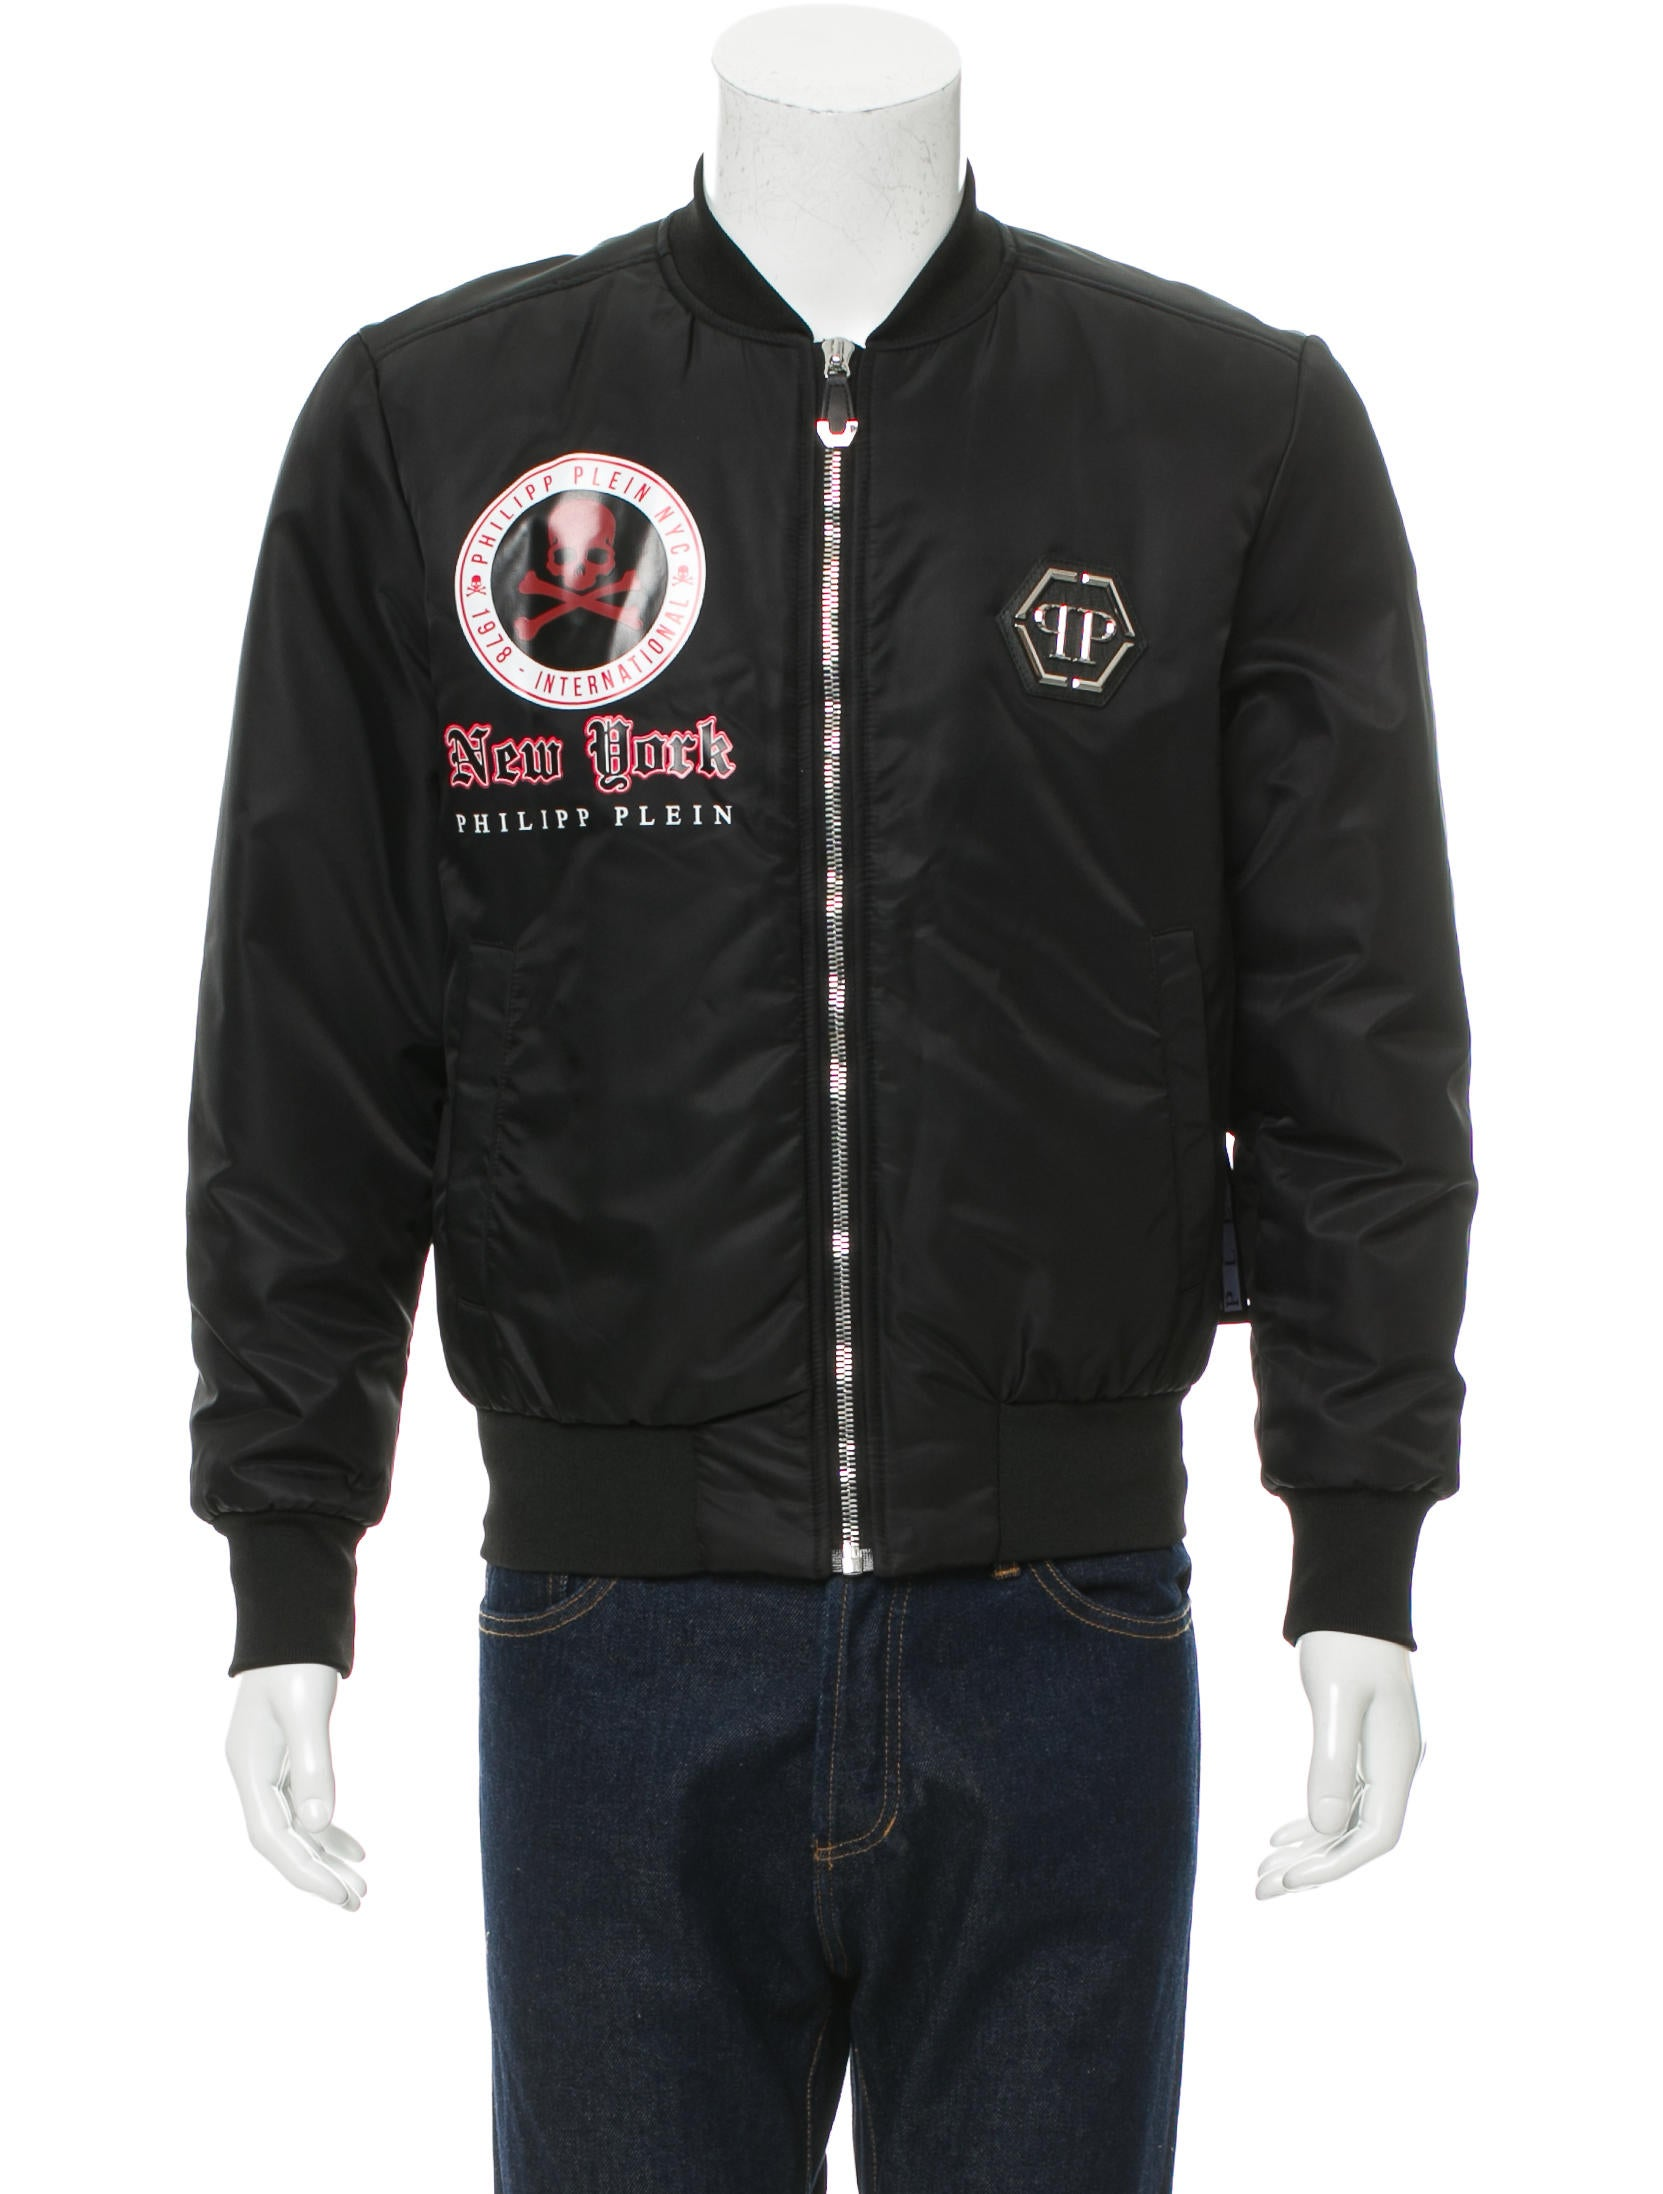 Philipp plein croco jacket